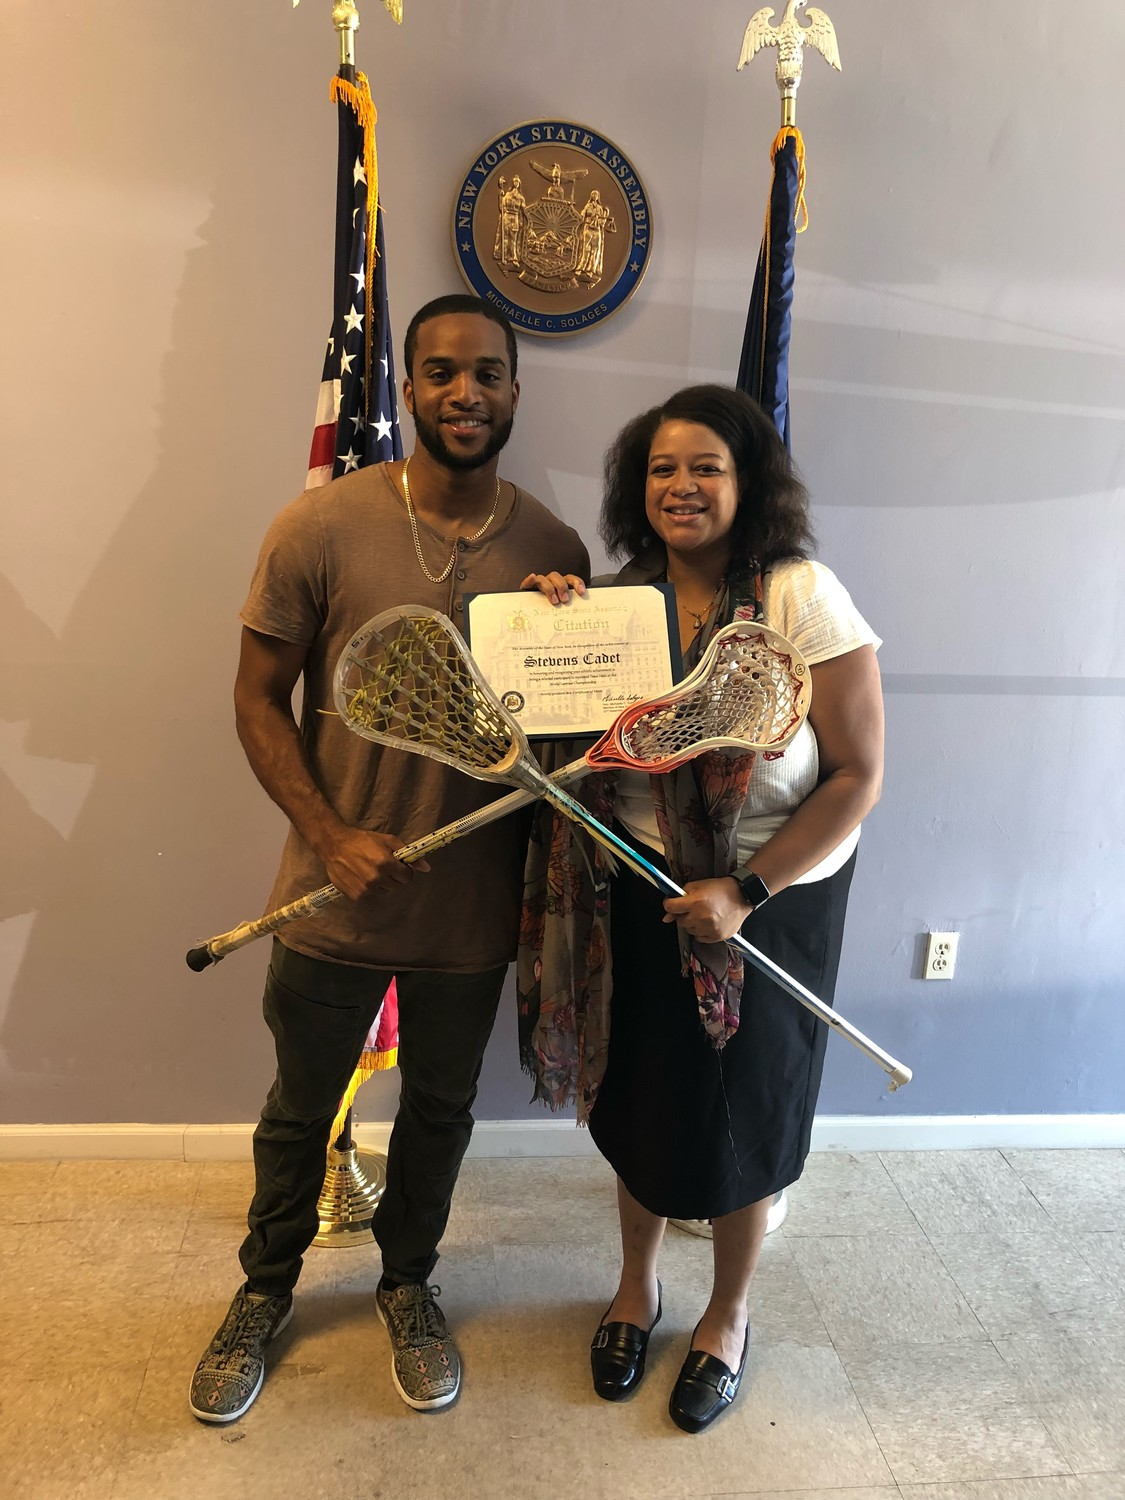 Cadet met with New York State Assemblywoman and lacrosse enthusiast Michaelle Solages.